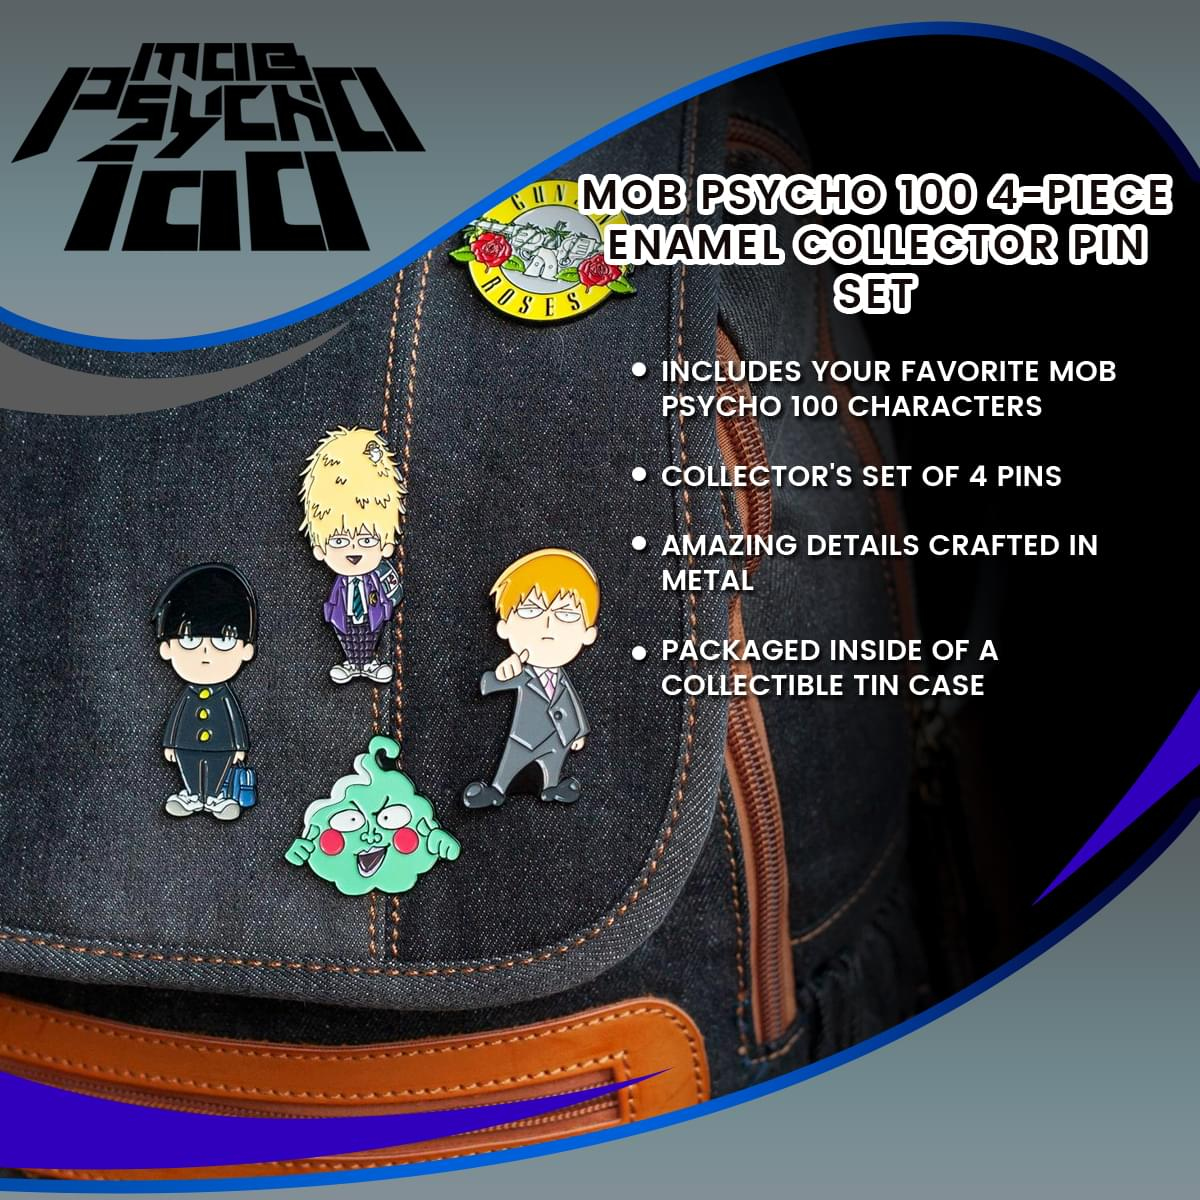 Mob Psycho 100 4-Piece Enamel Collector Pin Set